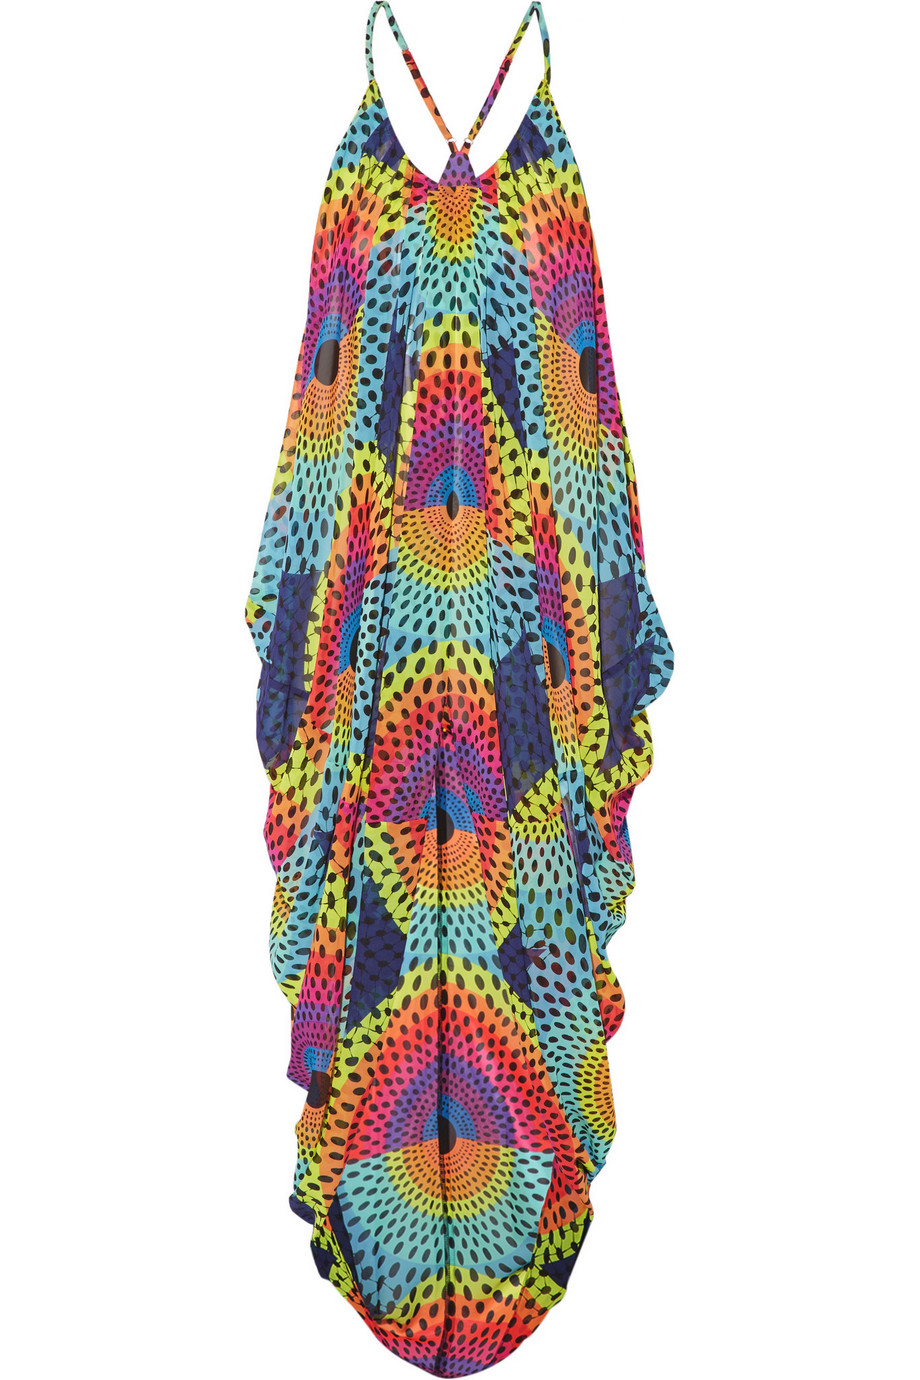 Mara Hoffman Electrolight Printed Georgette Beach Dress, Size: One size